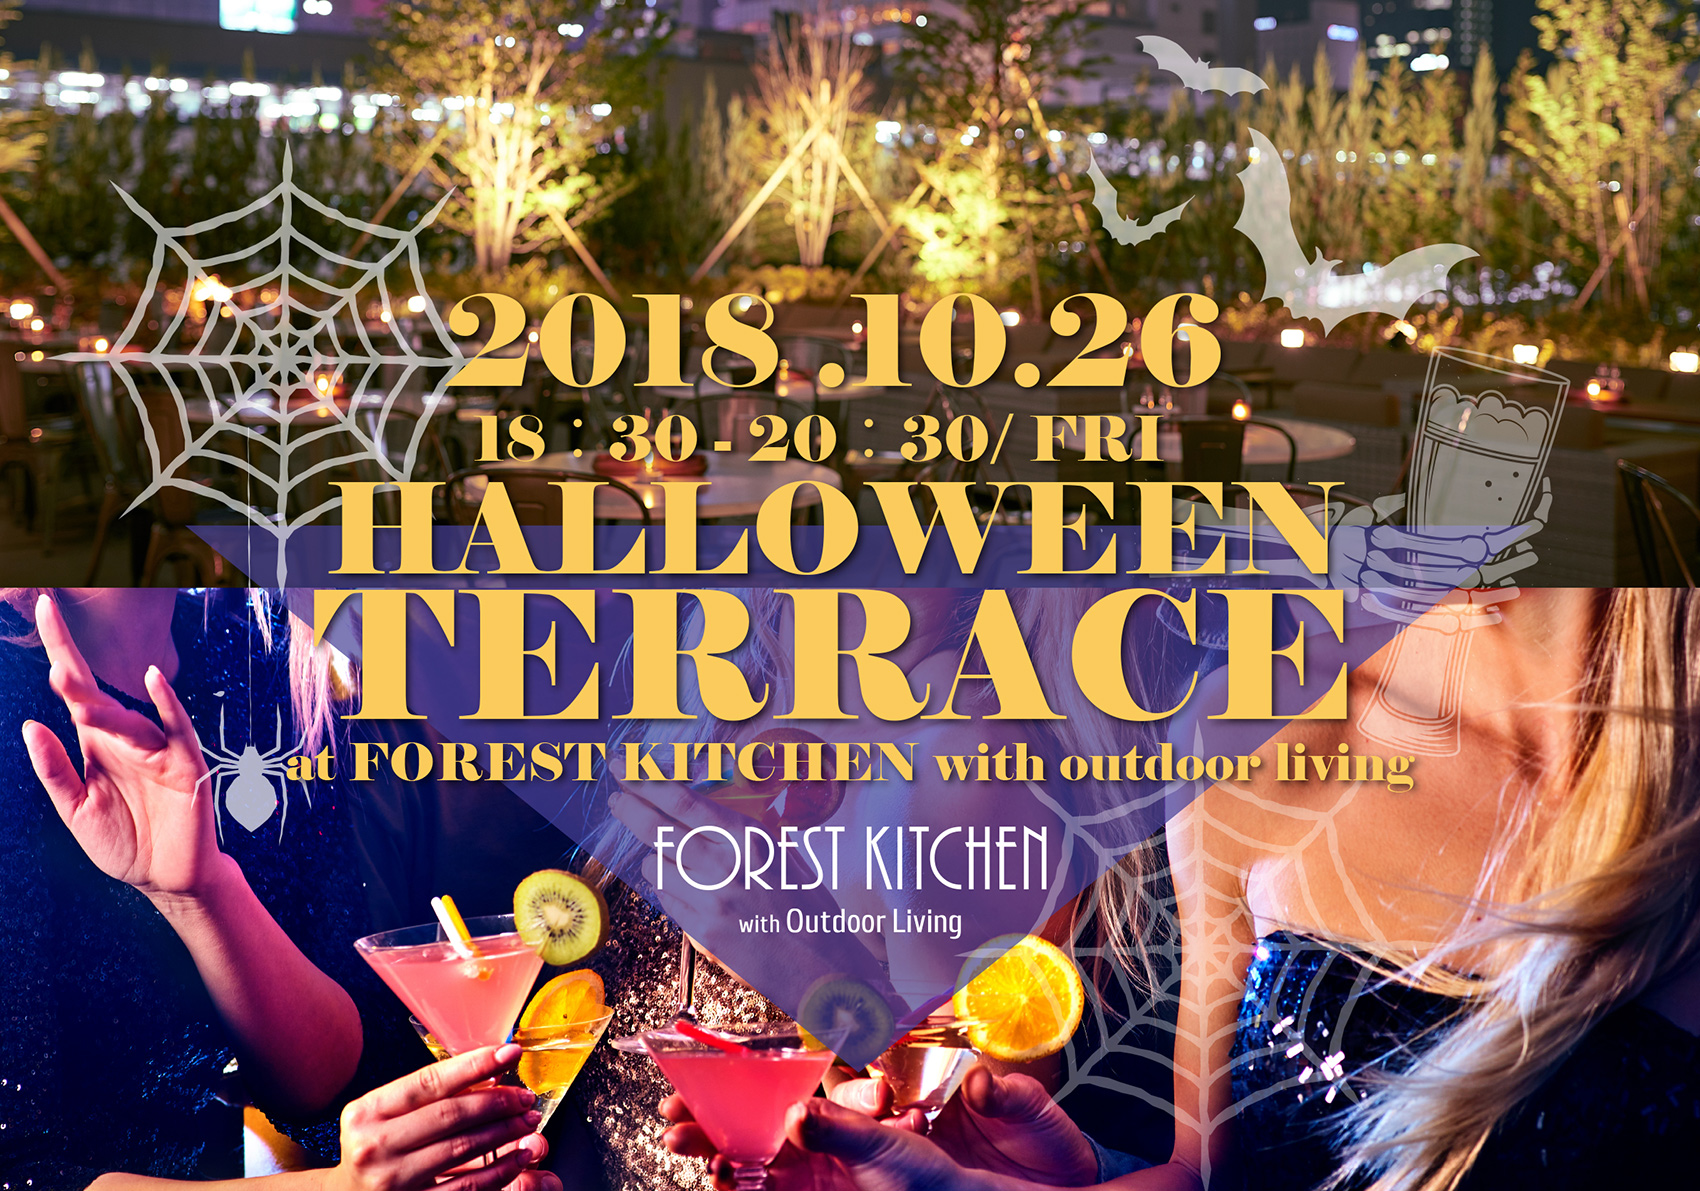 Halloween Terrace 2018 at FOREST KITCHEN with Outdoor Living